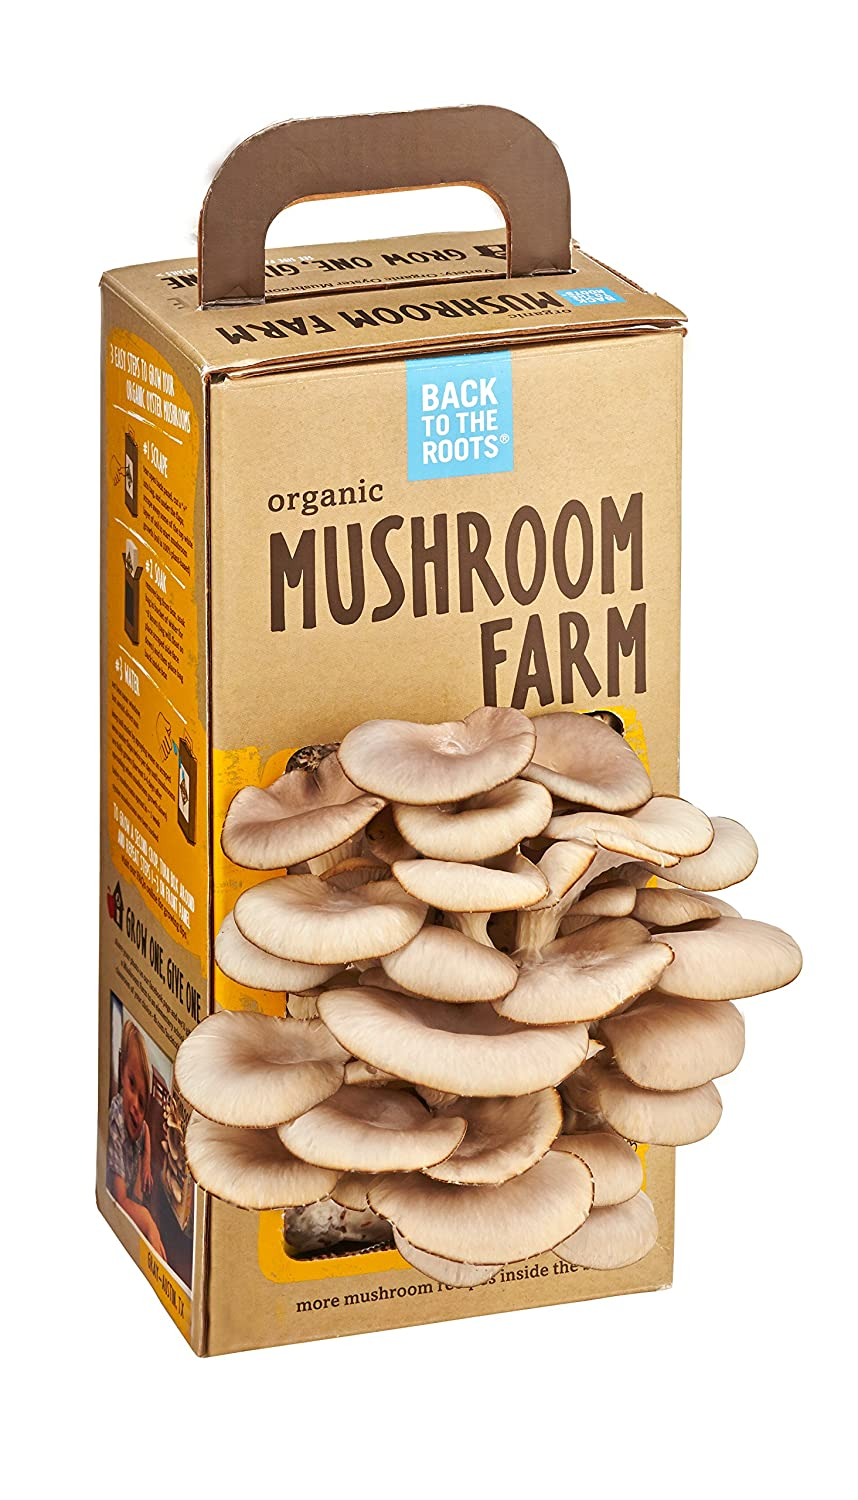 Kitchen Garden Mushrooms Amazoncom Back To The Roots Organic Mushroom Farm Amazon Launchpad